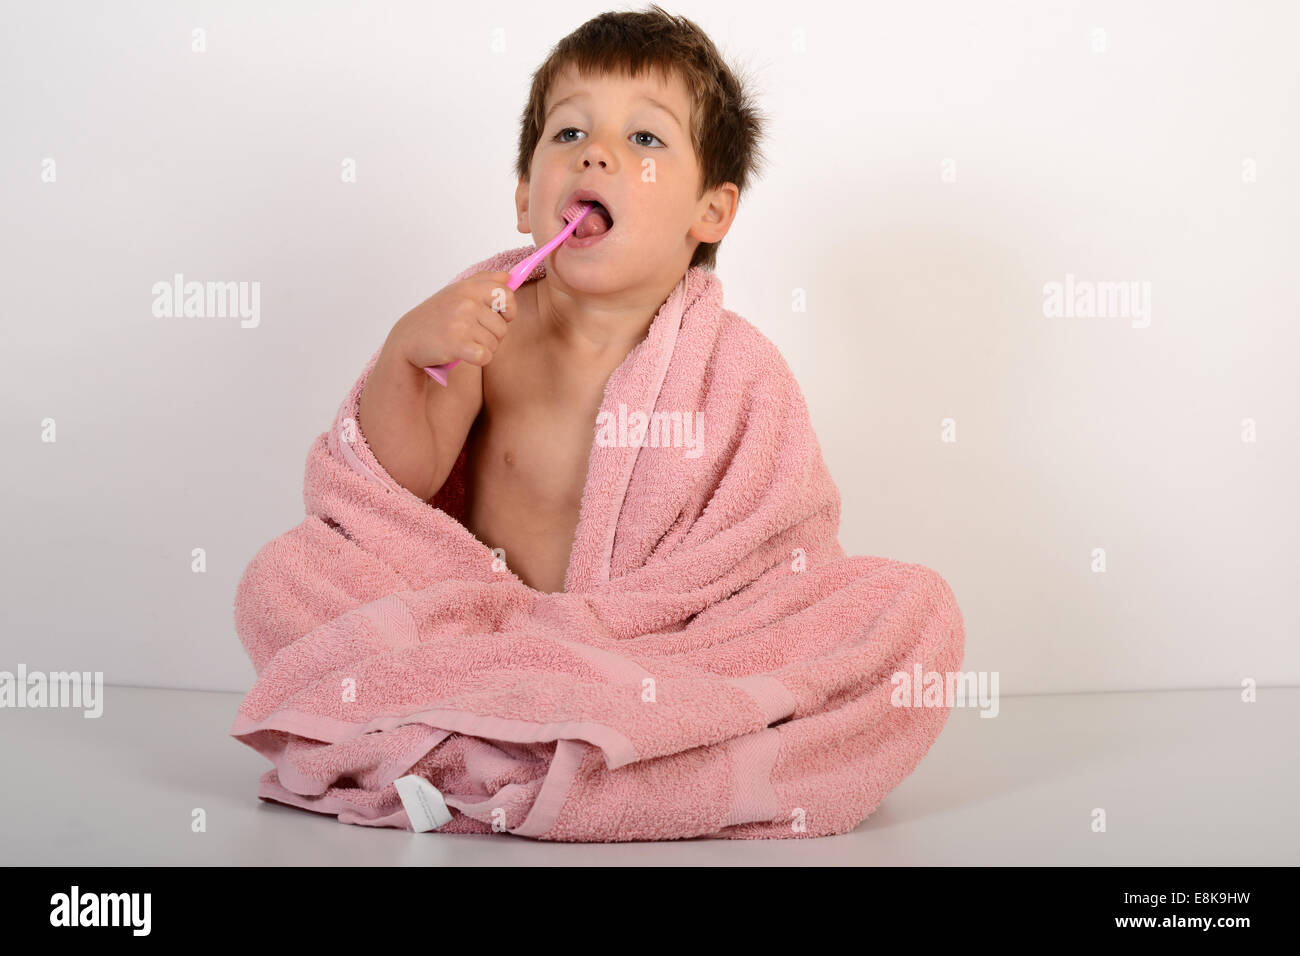 Young boy child children cleaning brushing teeth - Stock Image